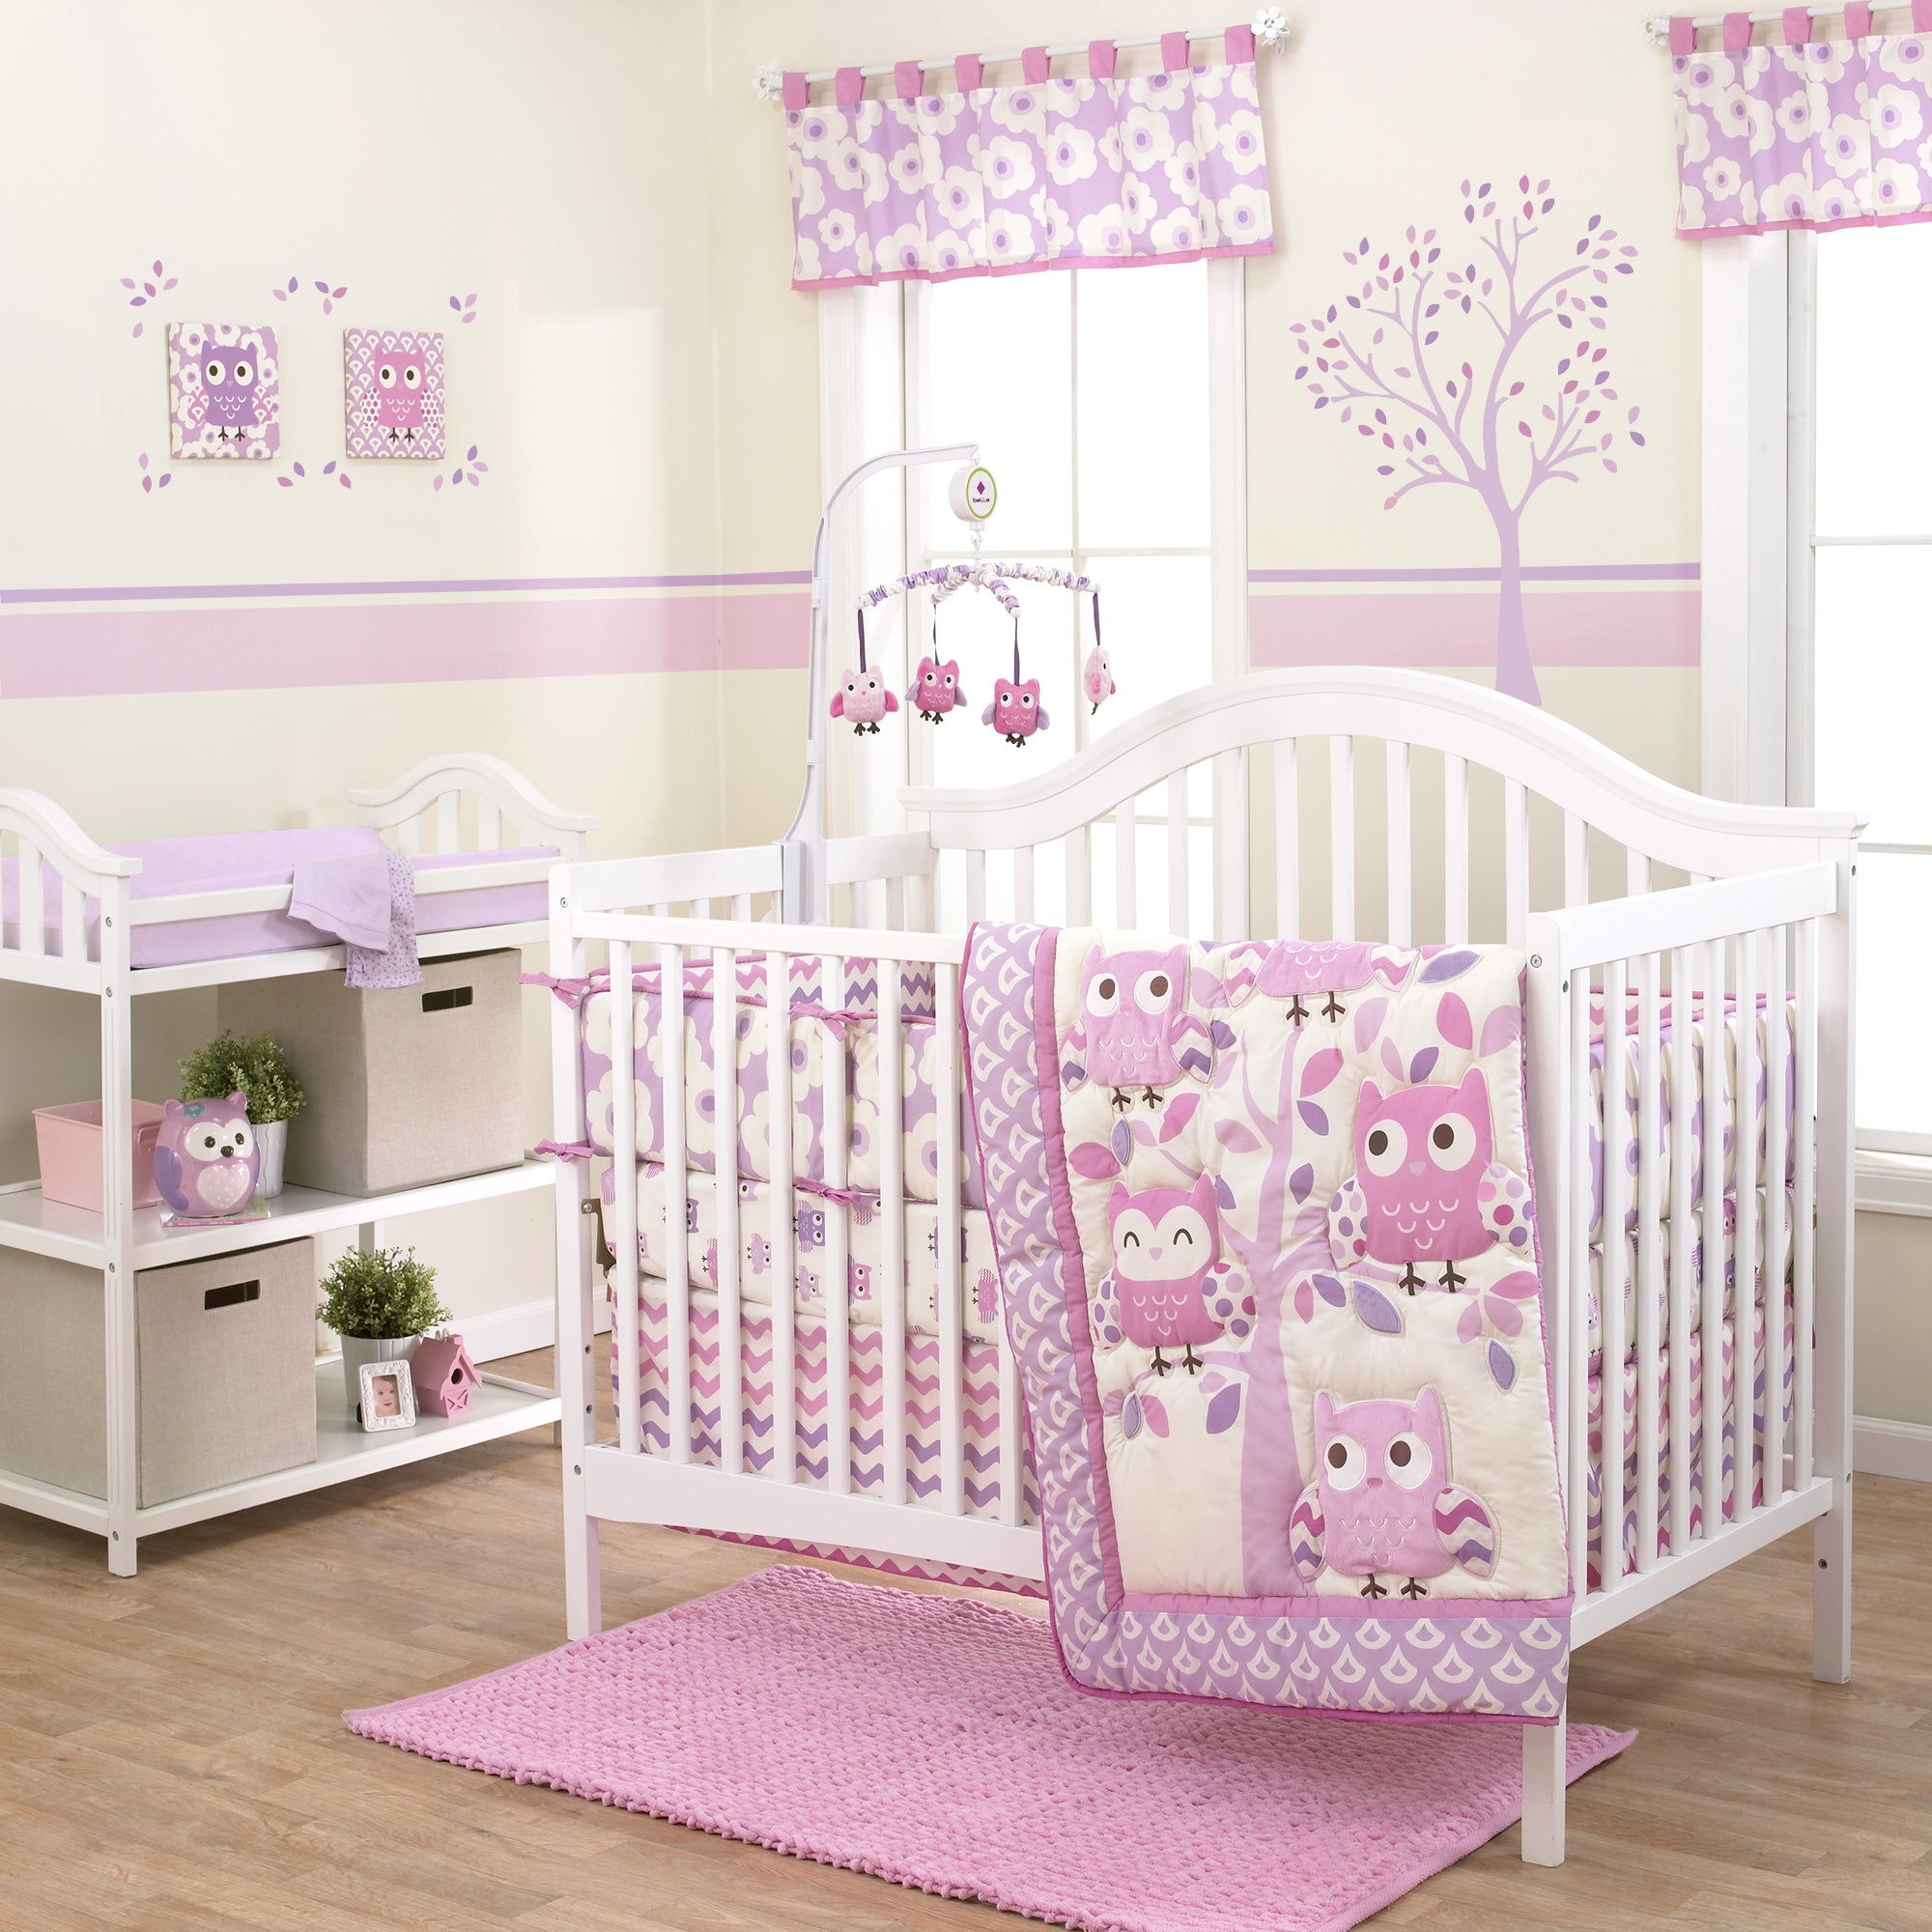 Belle Dancing Owl 3 Piece Crib Bedding Set Free Shipping Today 11407379